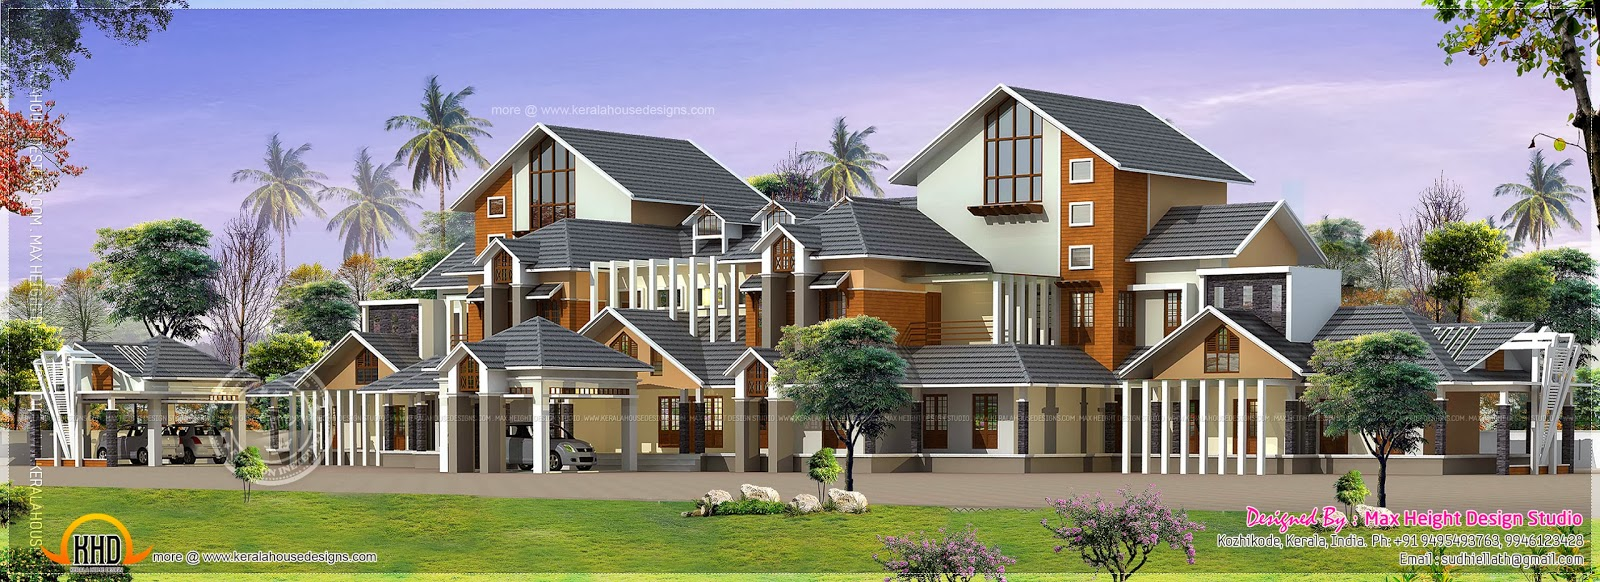 Gigantic Super Luxury Floor Plan Home Kerala Plans: luxery home plans